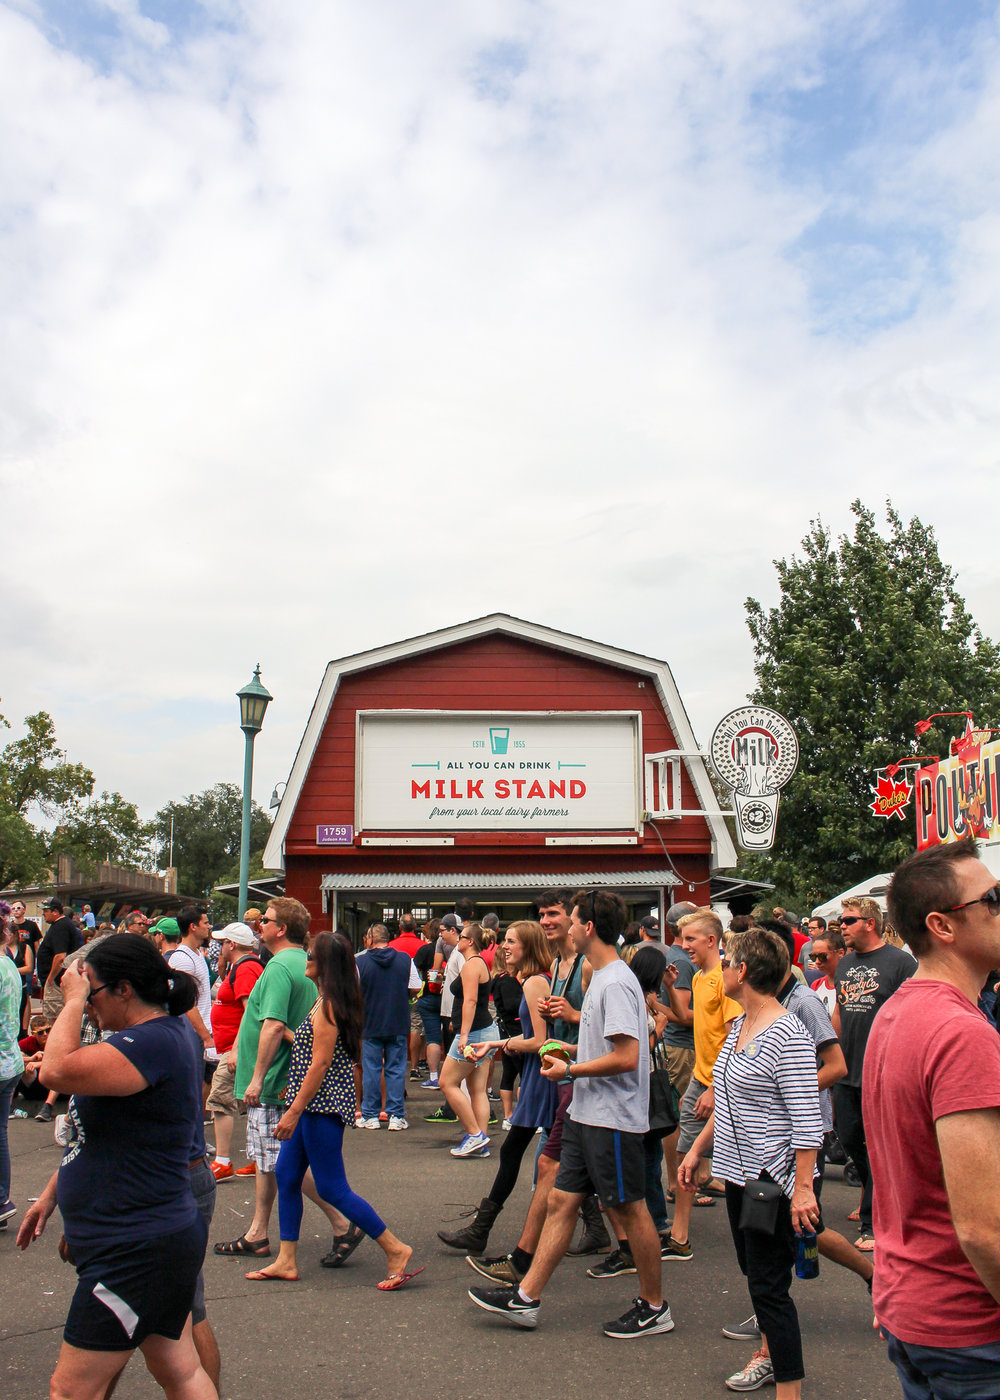 Milk Barn at the Minnesota State Fair 2016 via The Midwestival